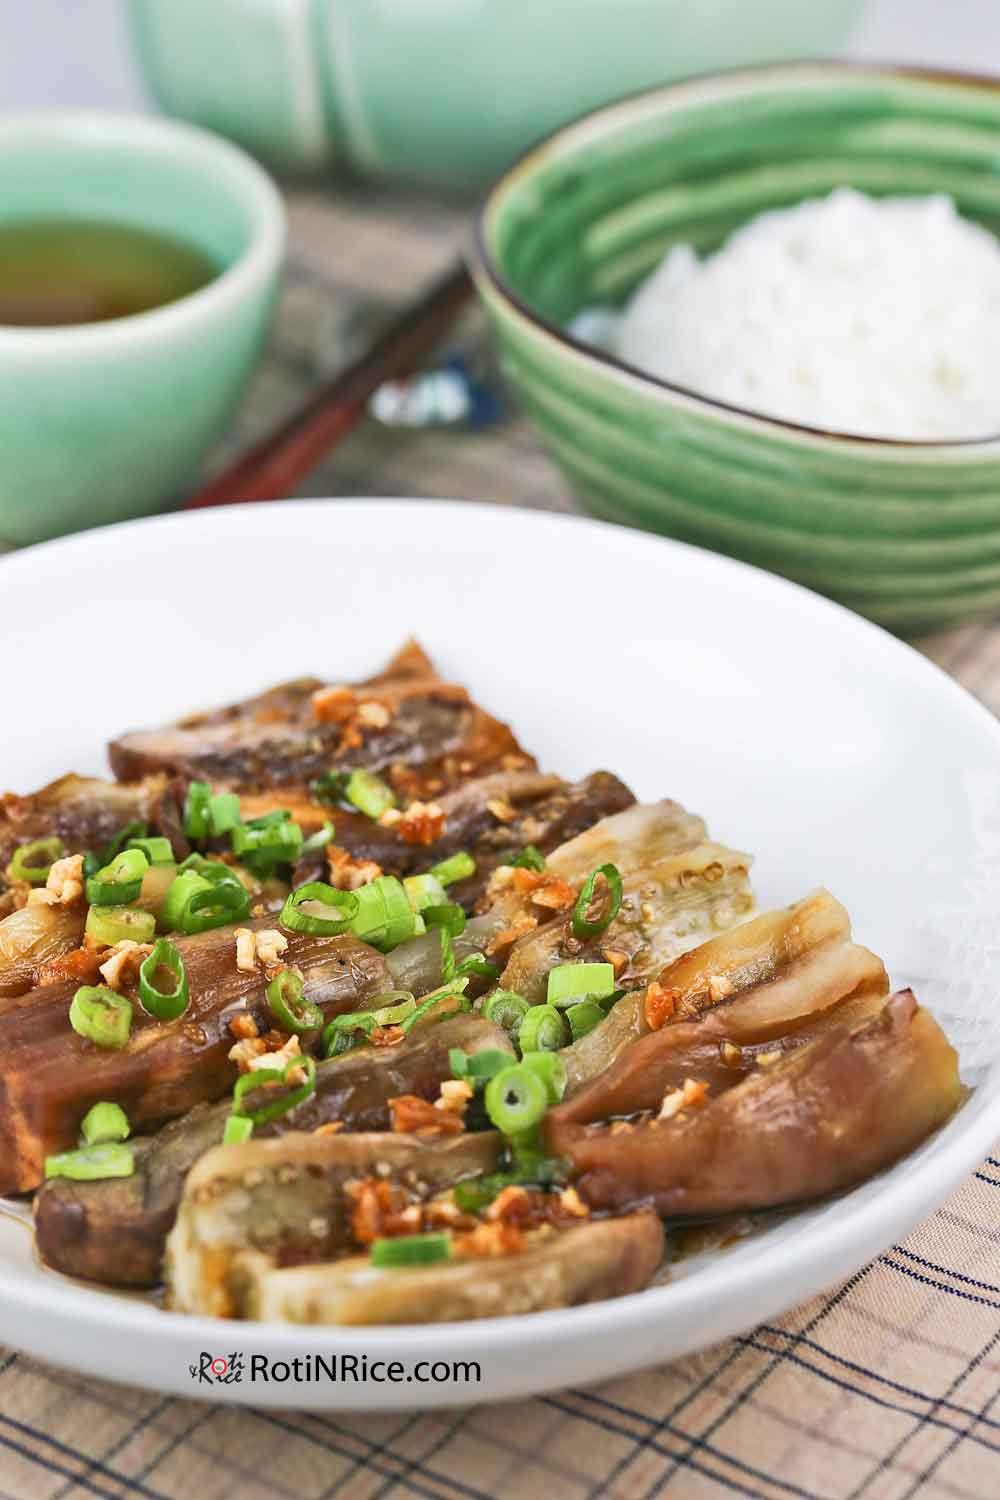 Deliciously smoky Roasted Eggplant with Garlic Soy Dressing